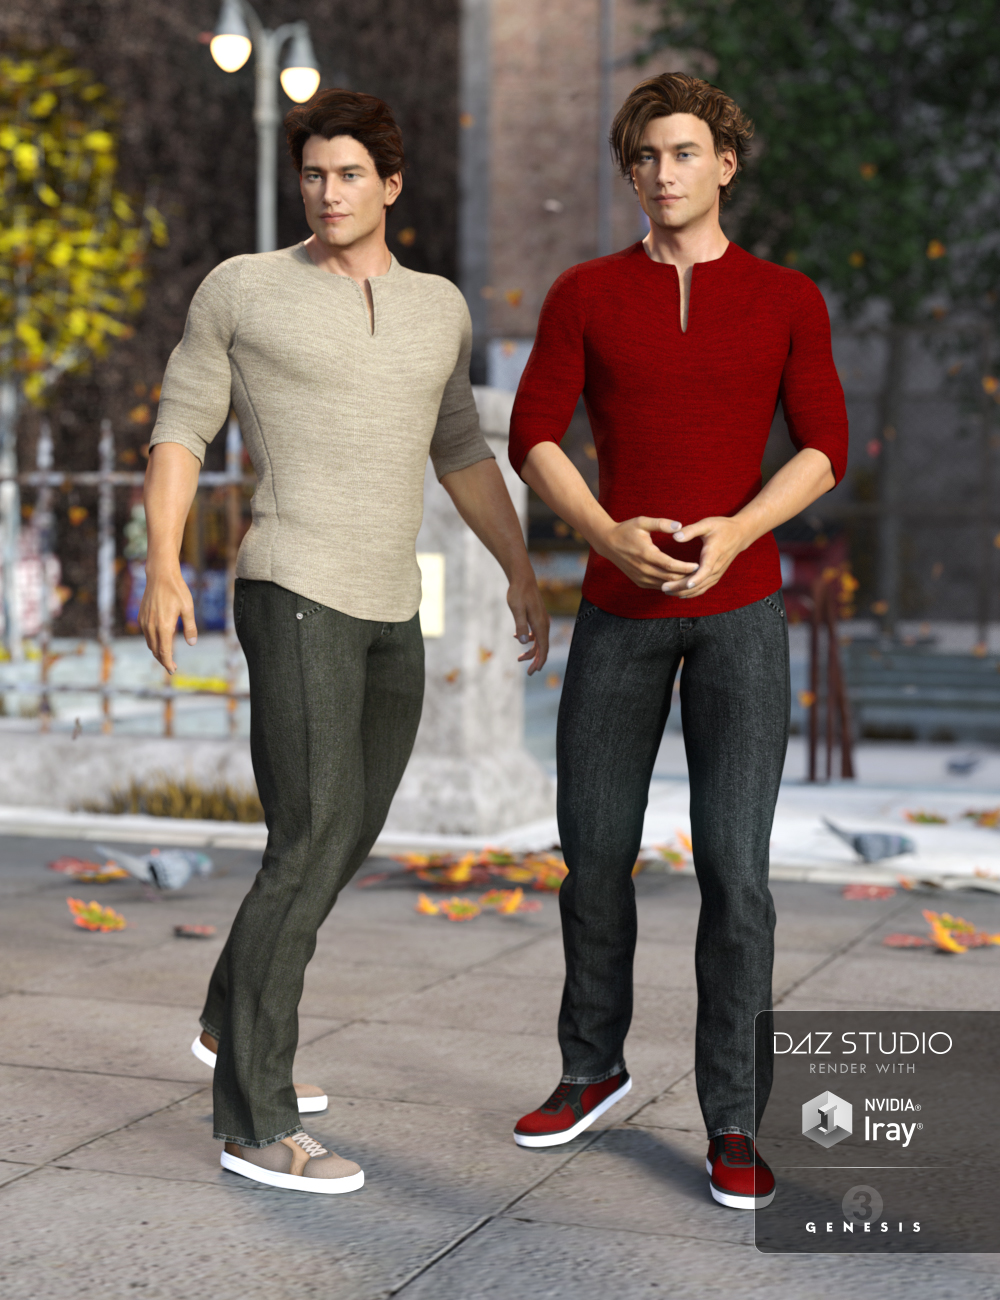 Laid Back Outfit Textures by: Sarsa, 3D Models by Daz 3D